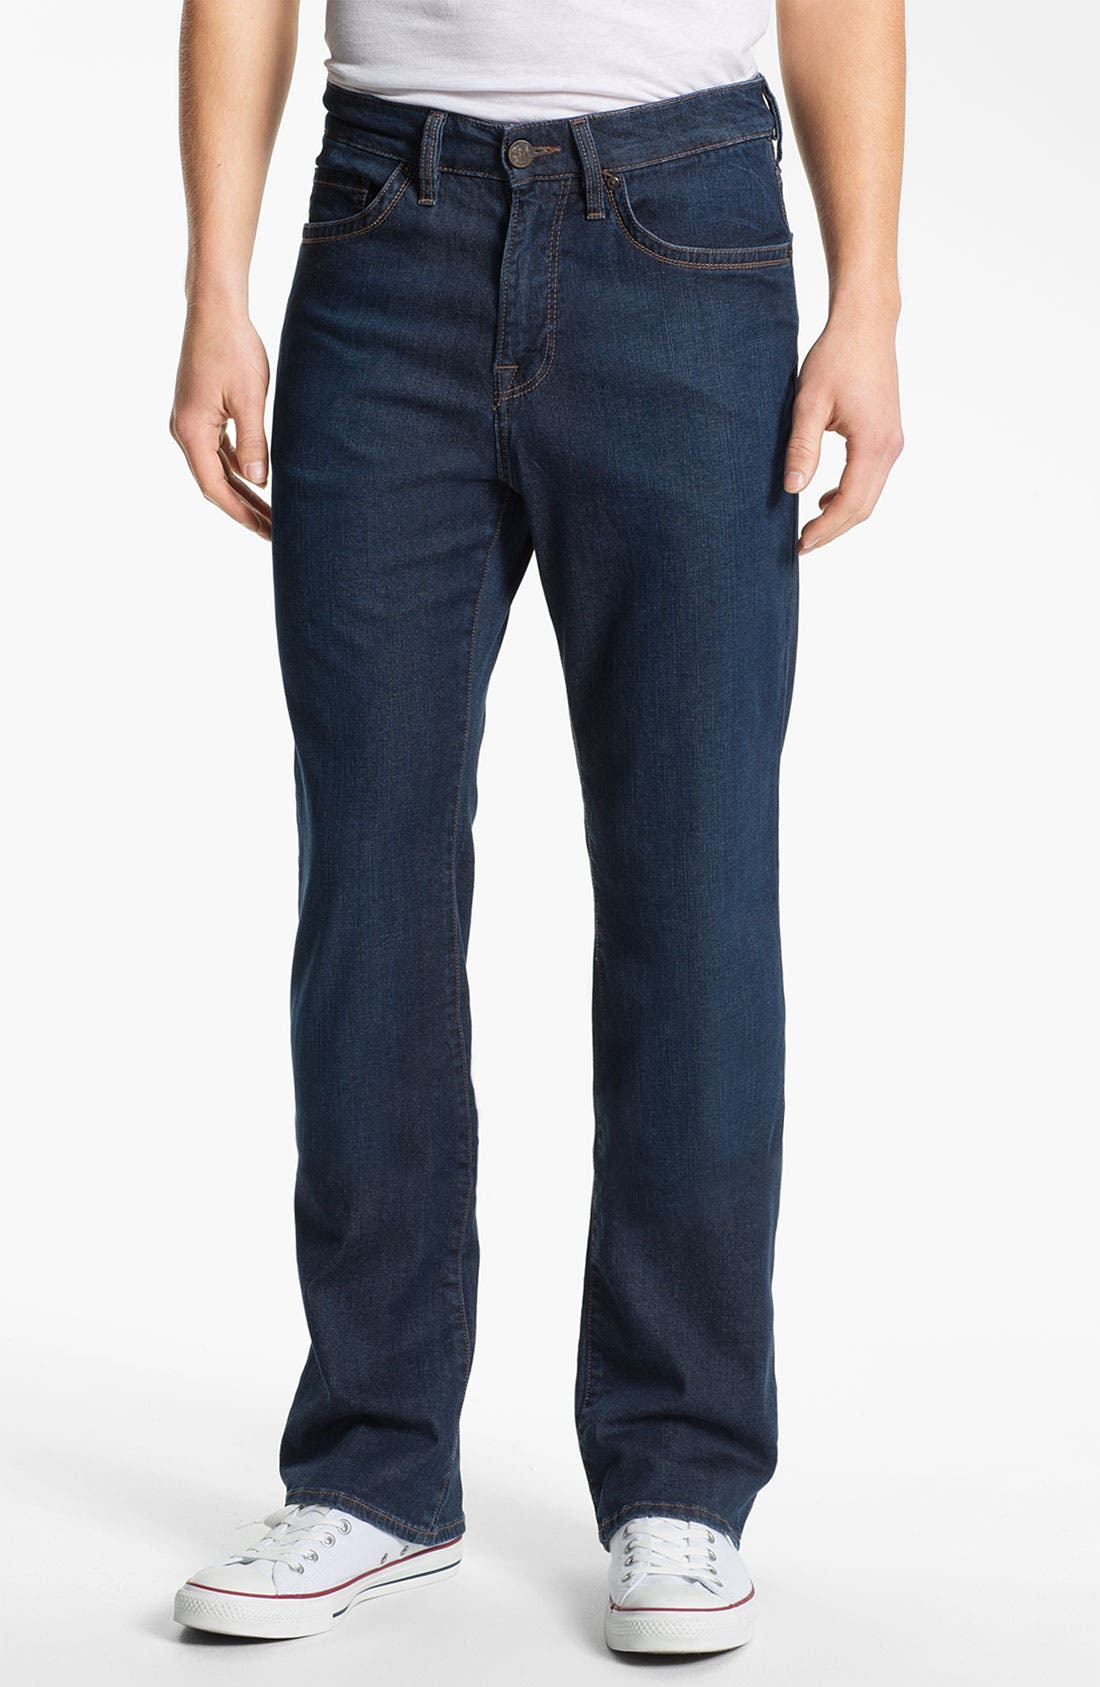 34 Heritage 'Charisma' Classic Relaxed Fit Jeans (Dark Cashmere) (Online Only) (Regular & Tall)